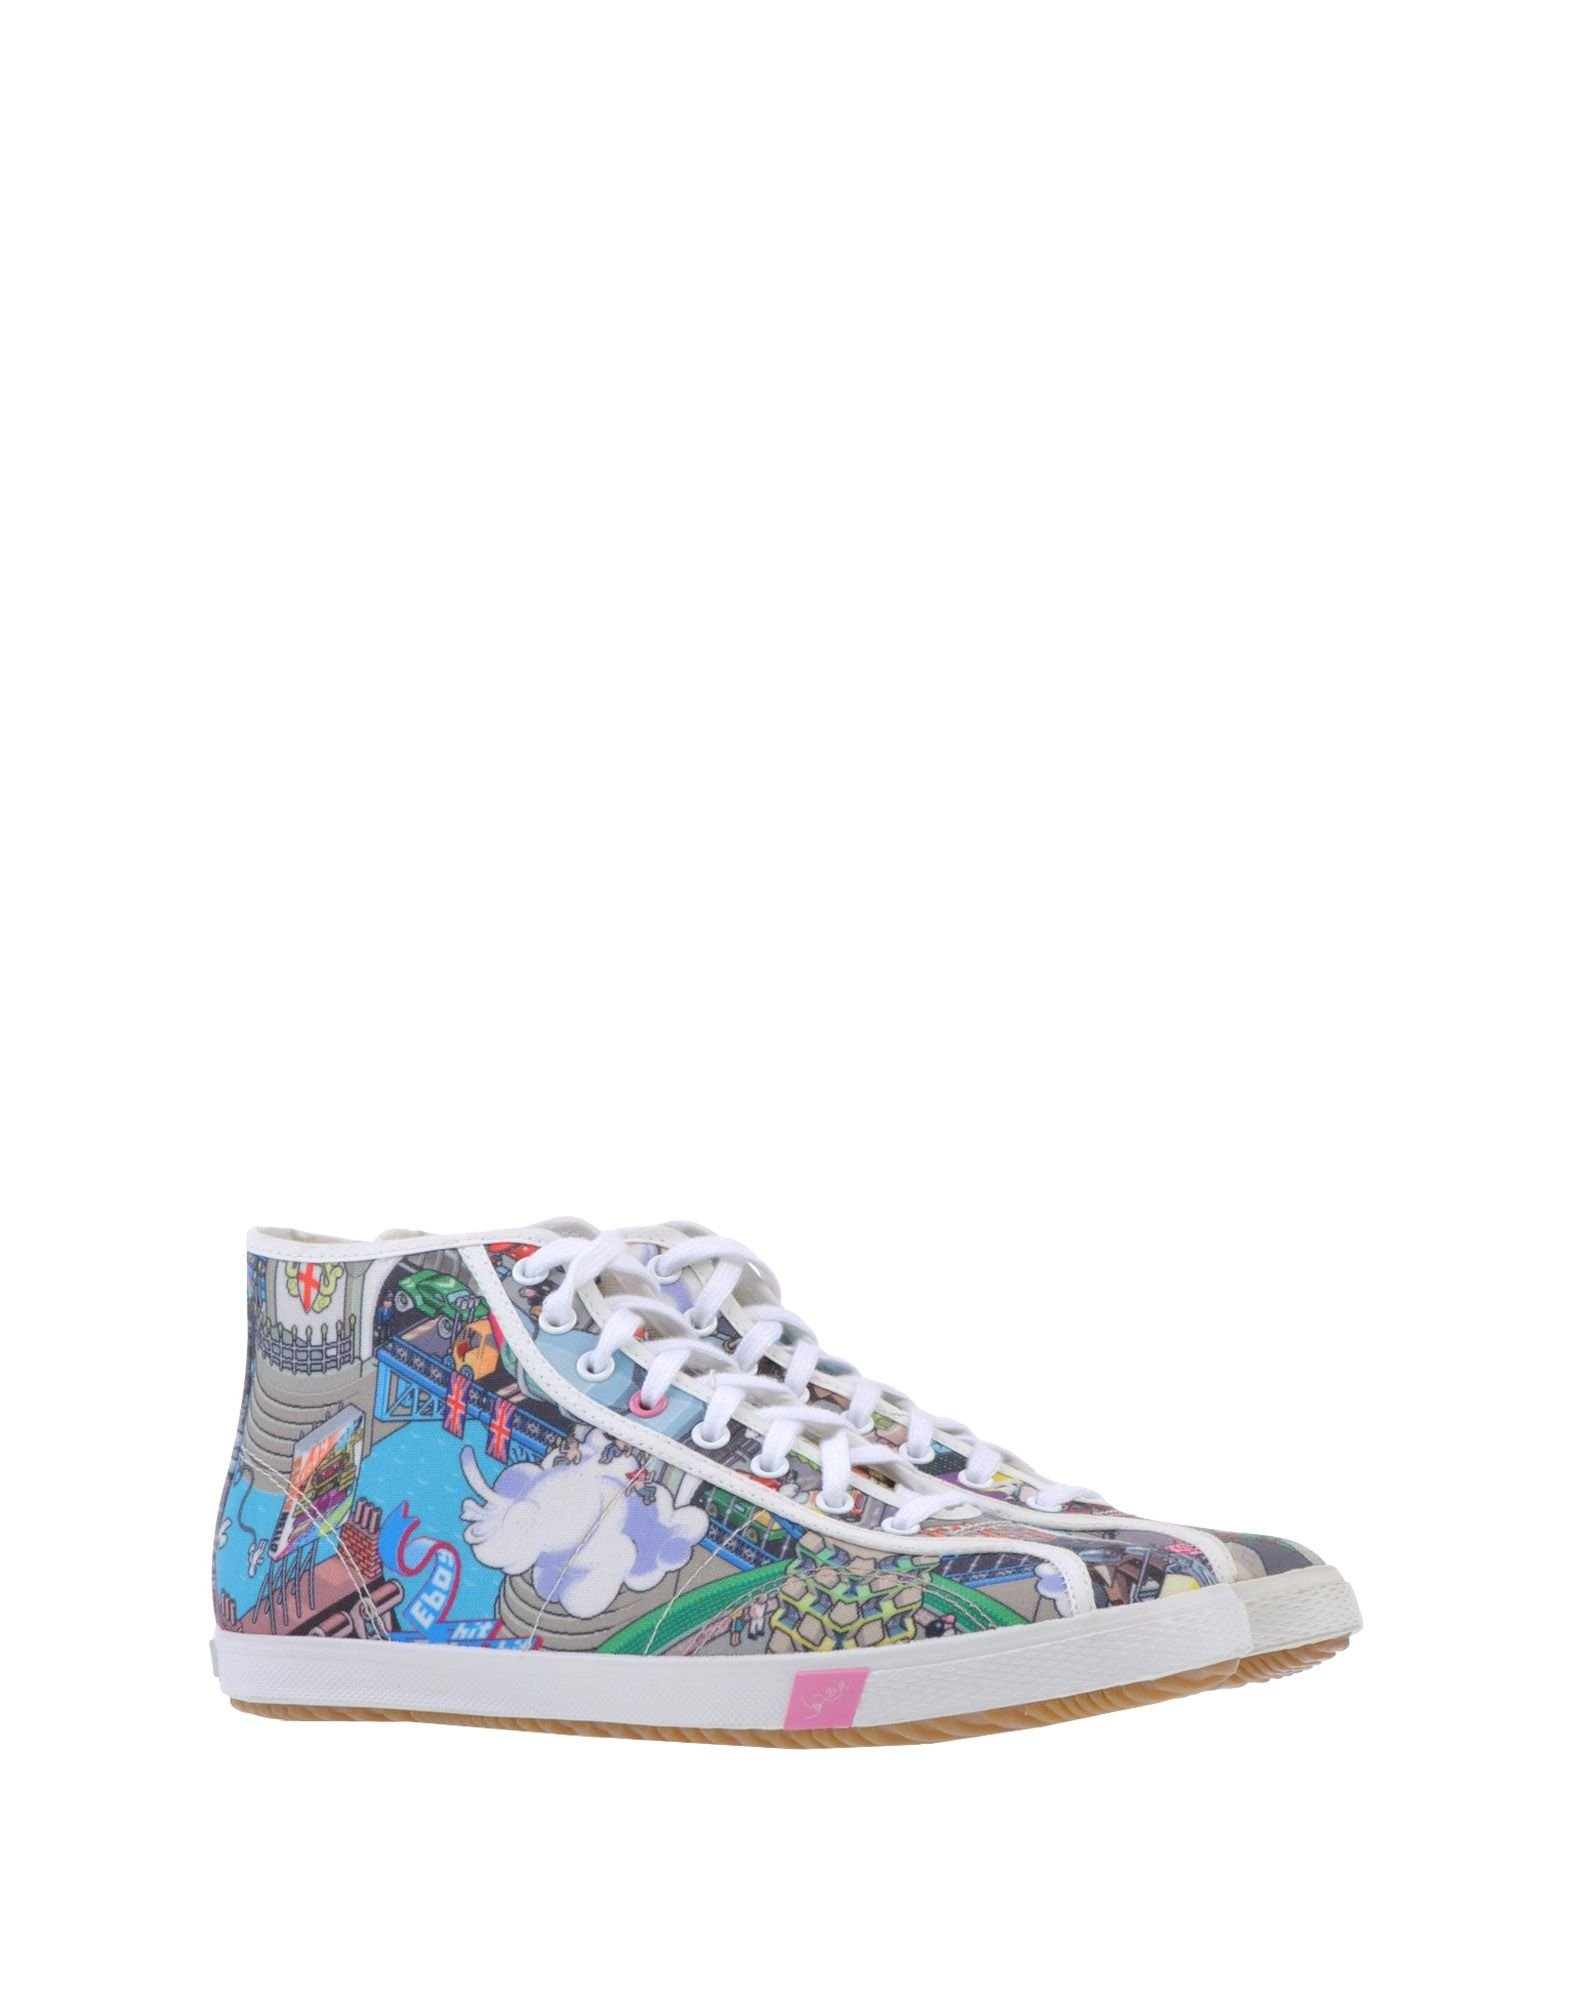 paul smith multicoloured high tops trainers in green light green. Black Bedroom Furniture Sets. Home Design Ideas